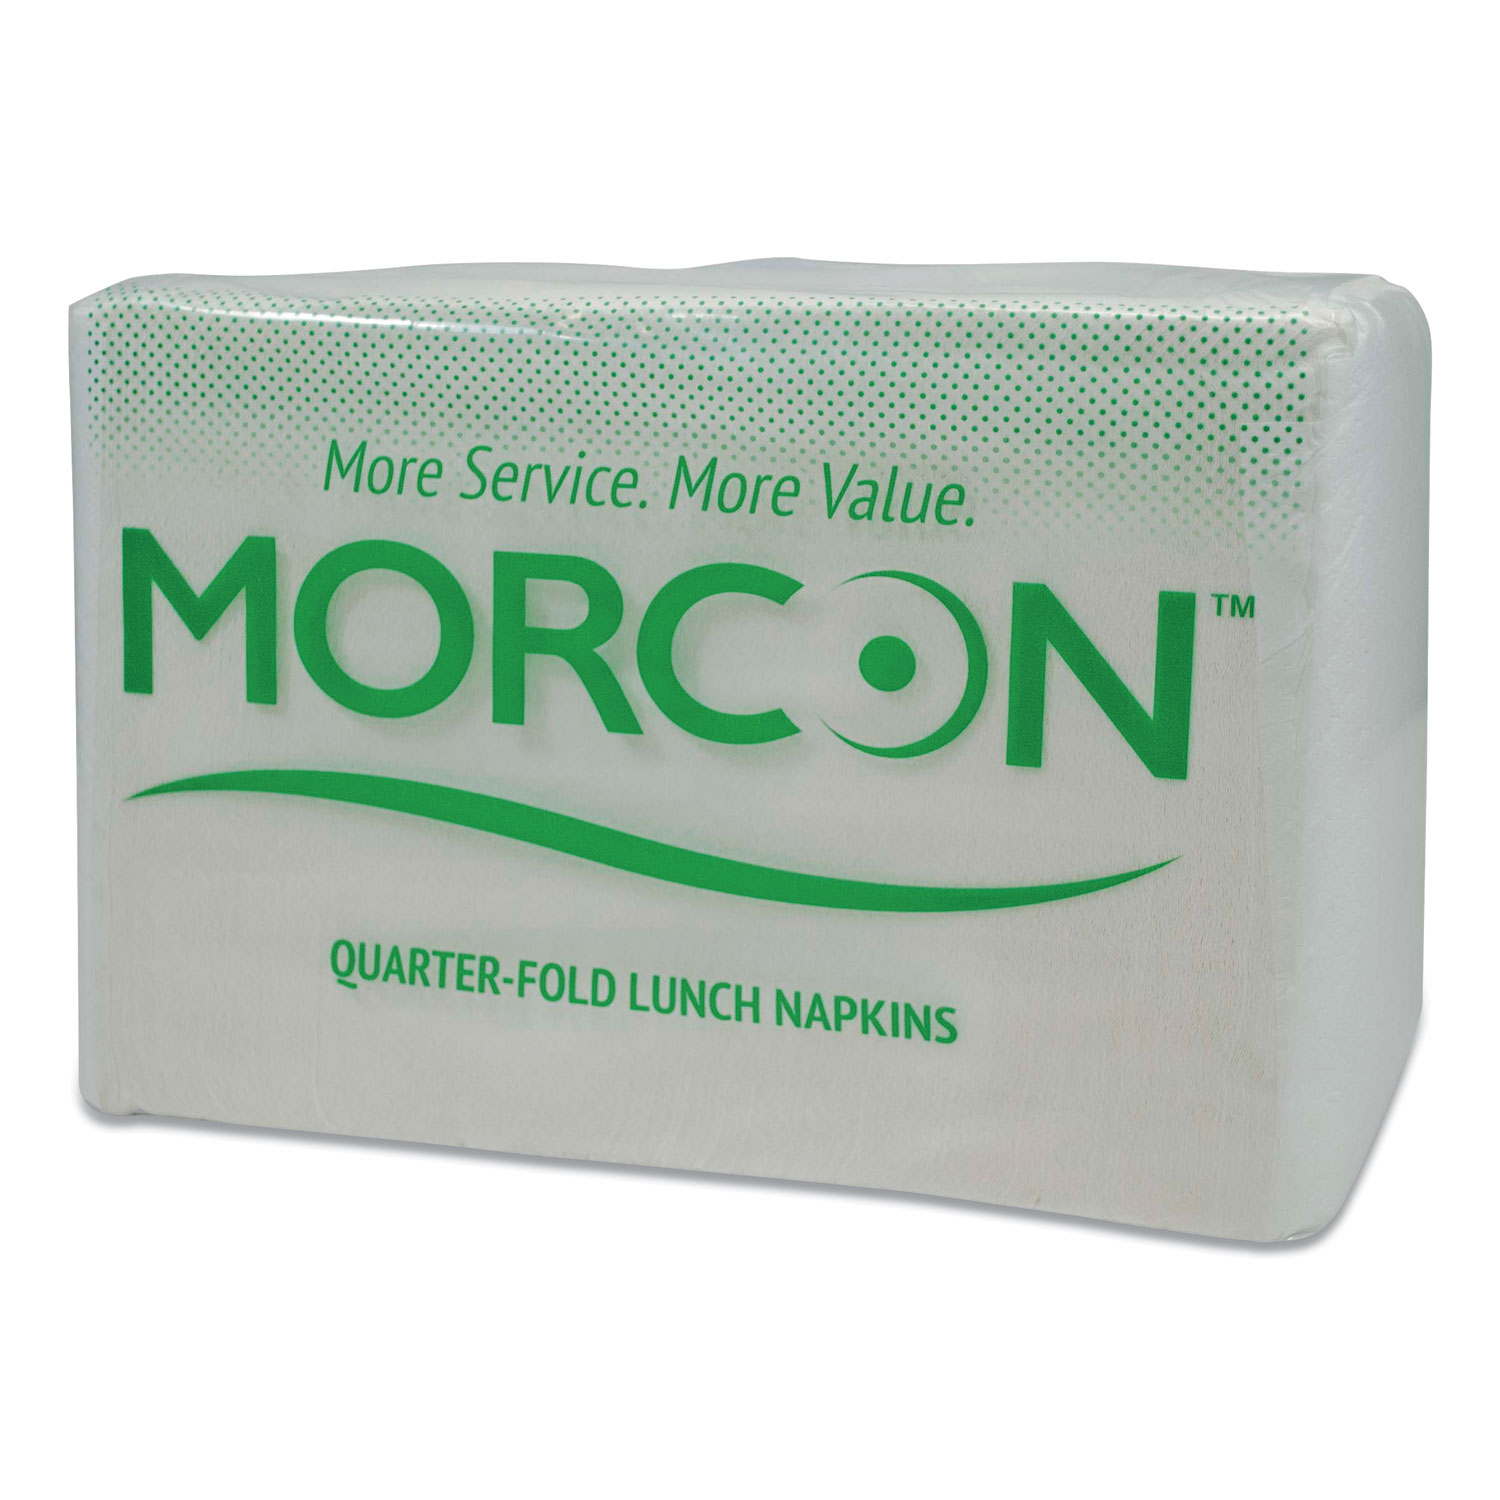 "Morsoft 1/4 Fold Lunch Napkins, 1 Ply, 11.5"" x 11.5"", White, 6,000/Carton"